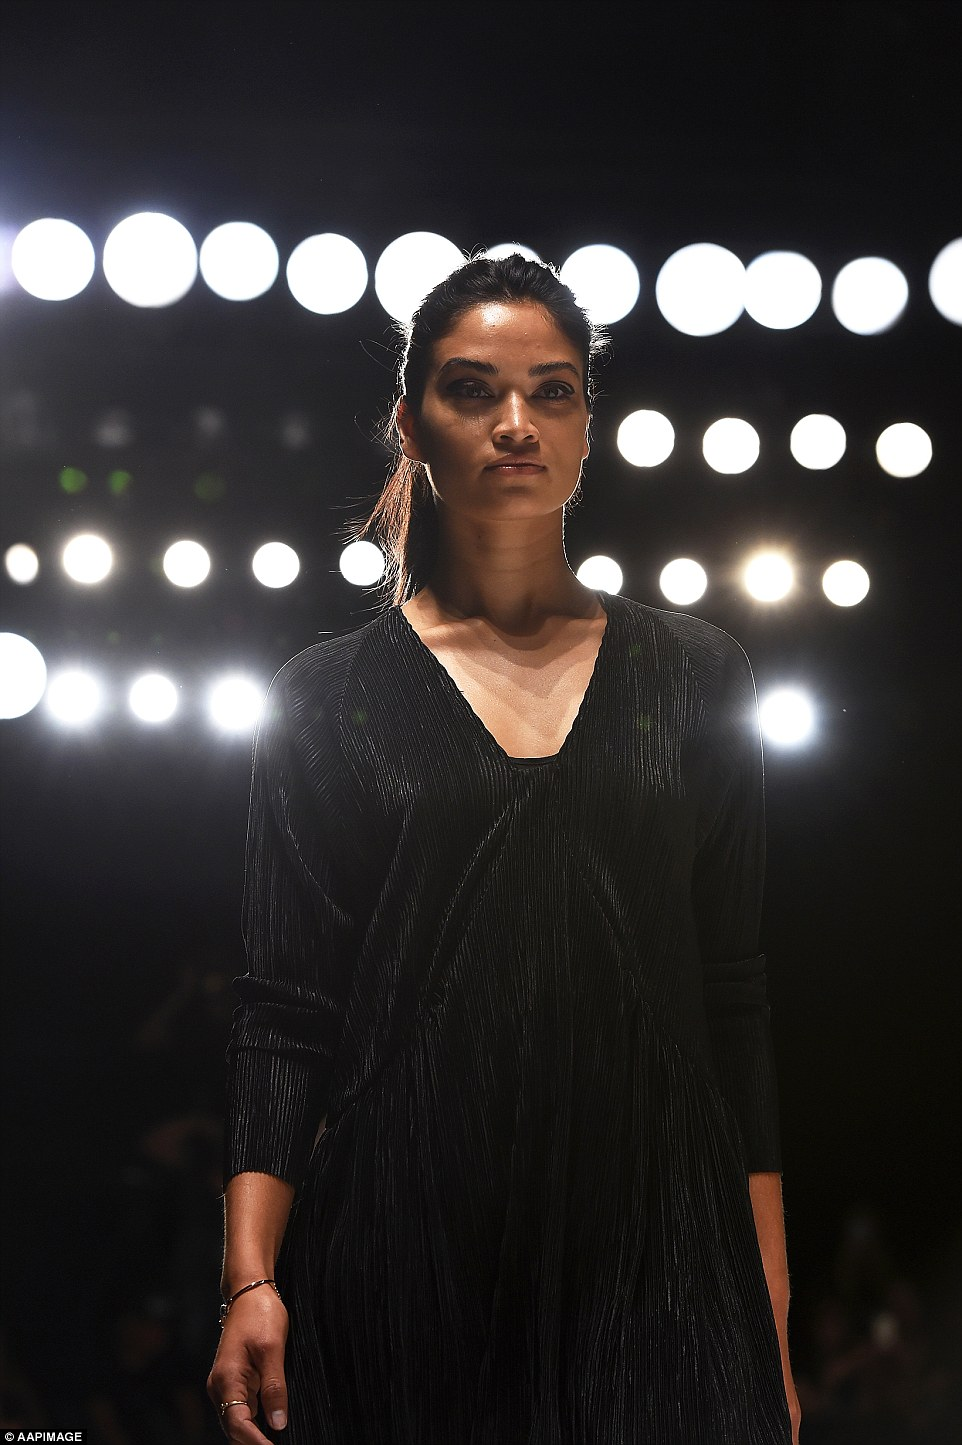 Getting ready: Shanina walked the runway in the same black dress she was photographed in earlier in the day for rehearsals